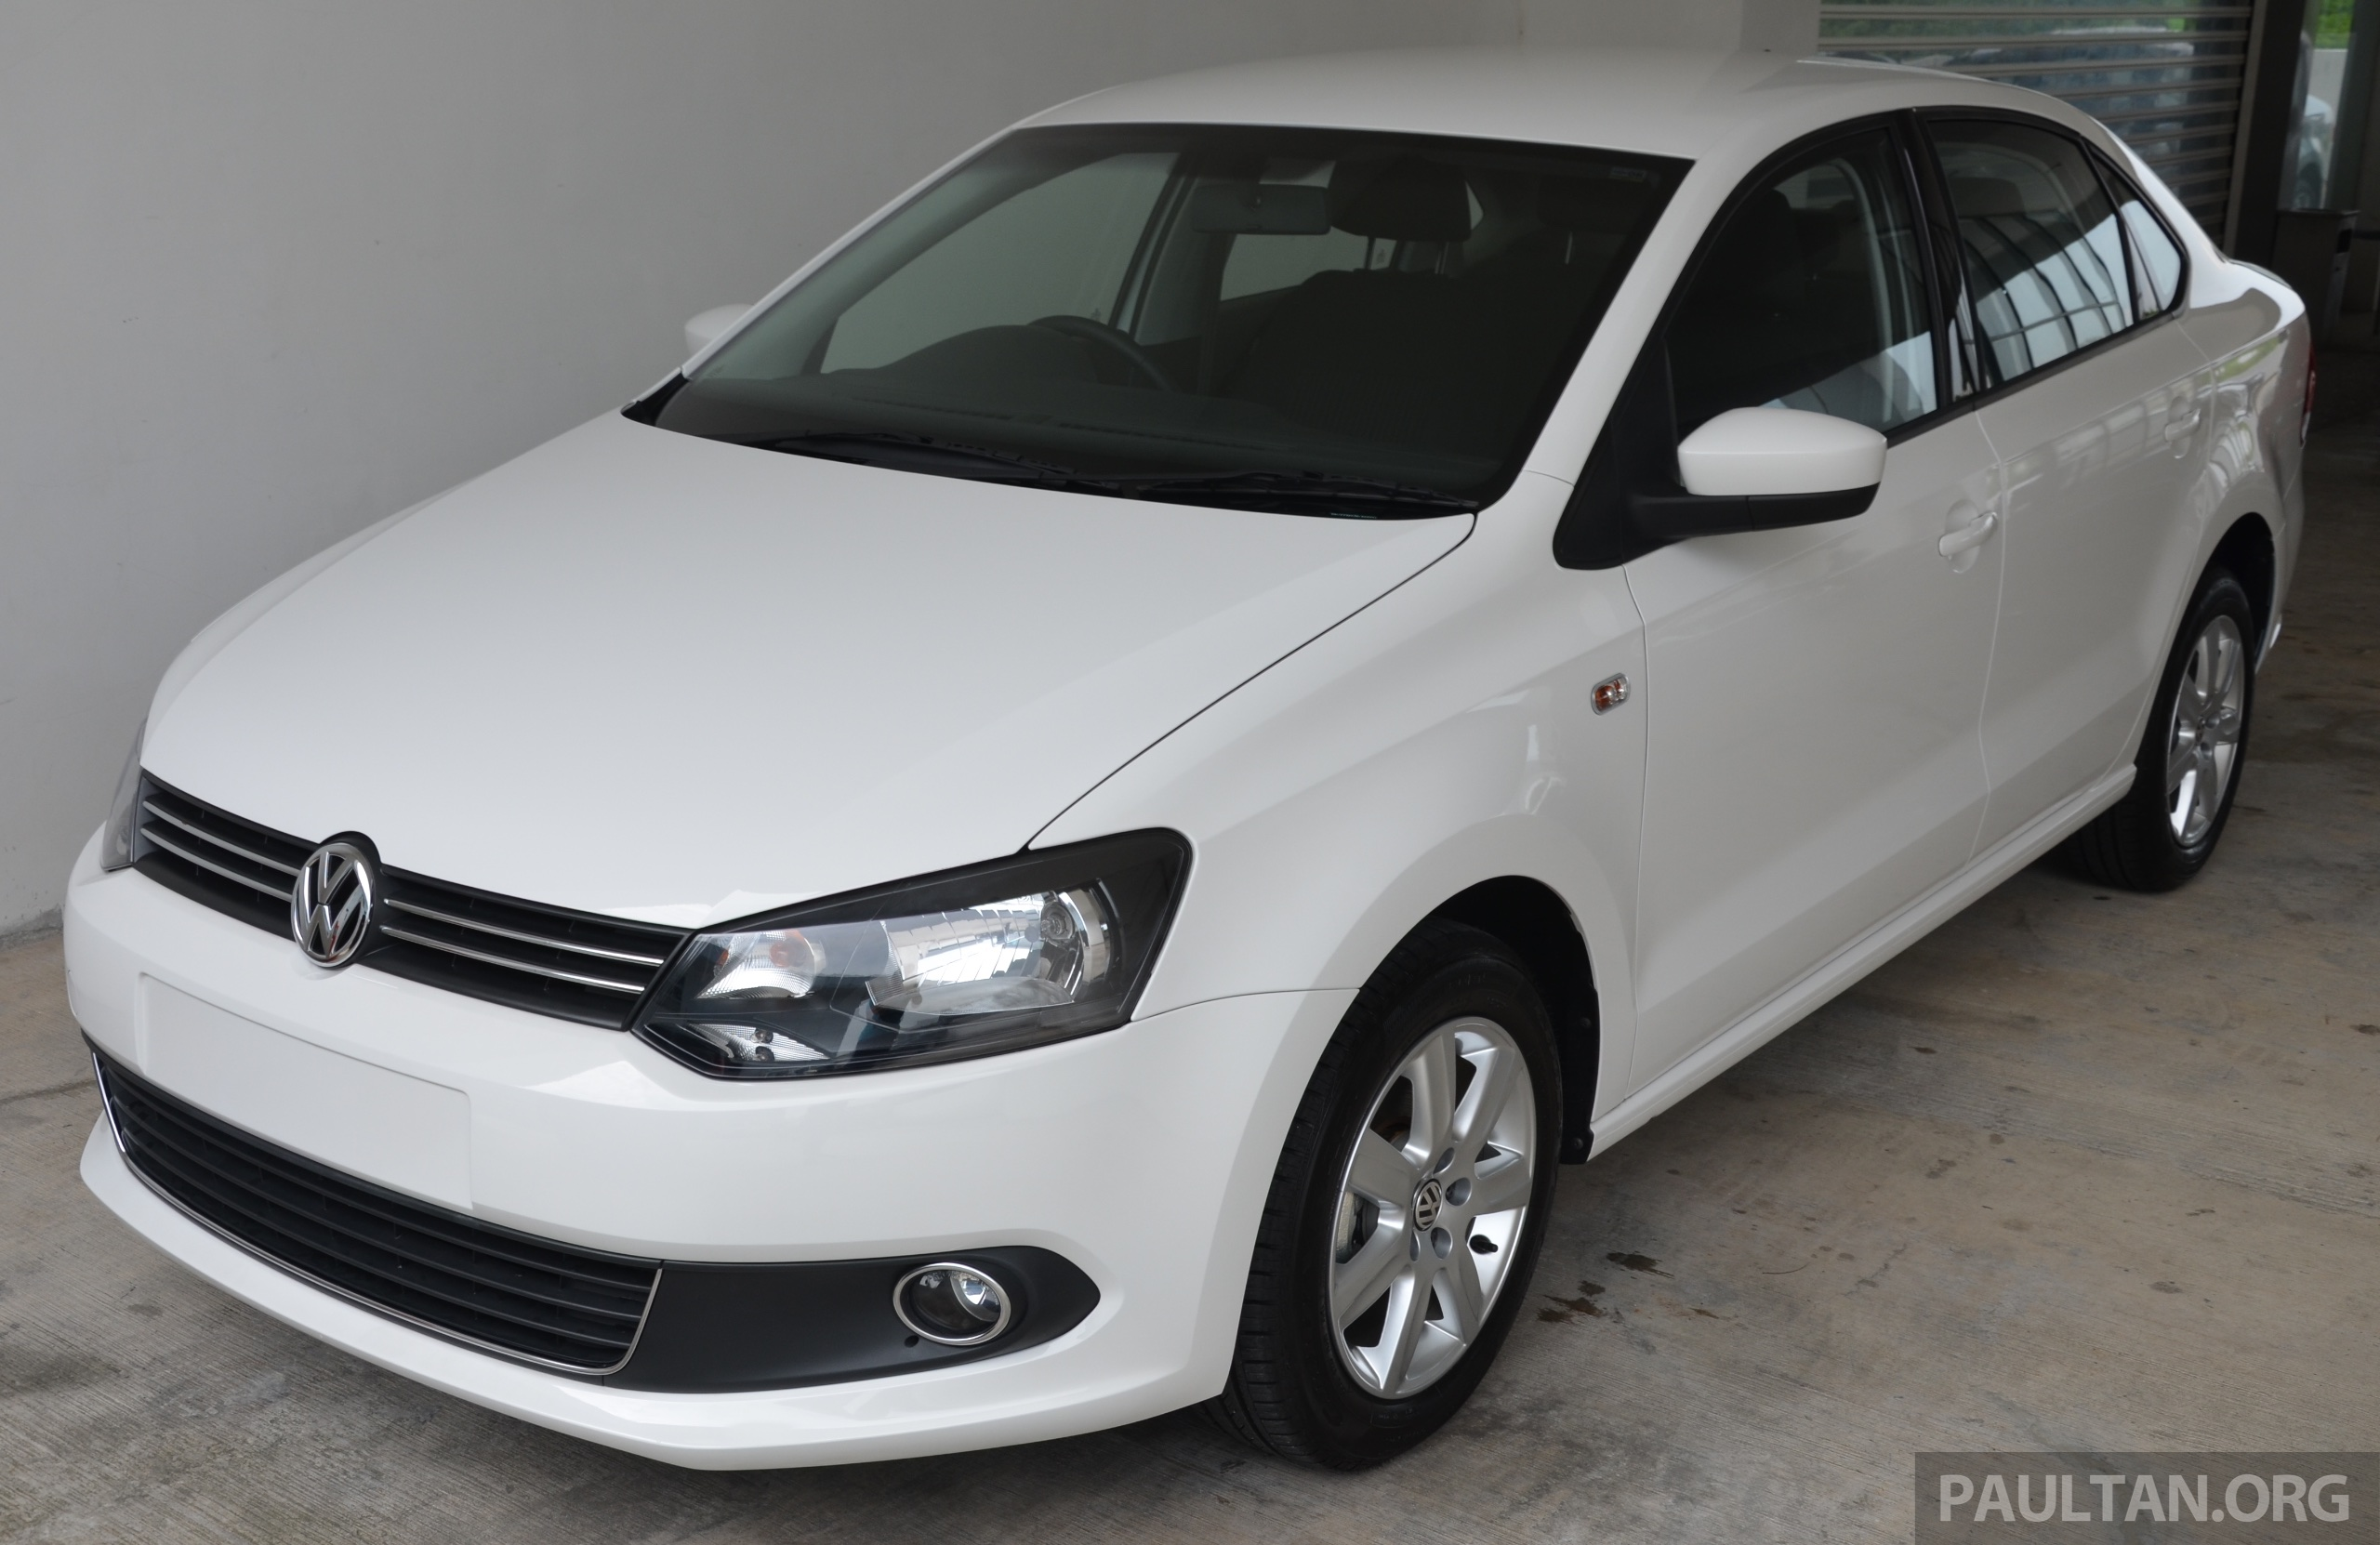 GALLERY: Volkswagen Polo 1.6 Sedan CKD facelift